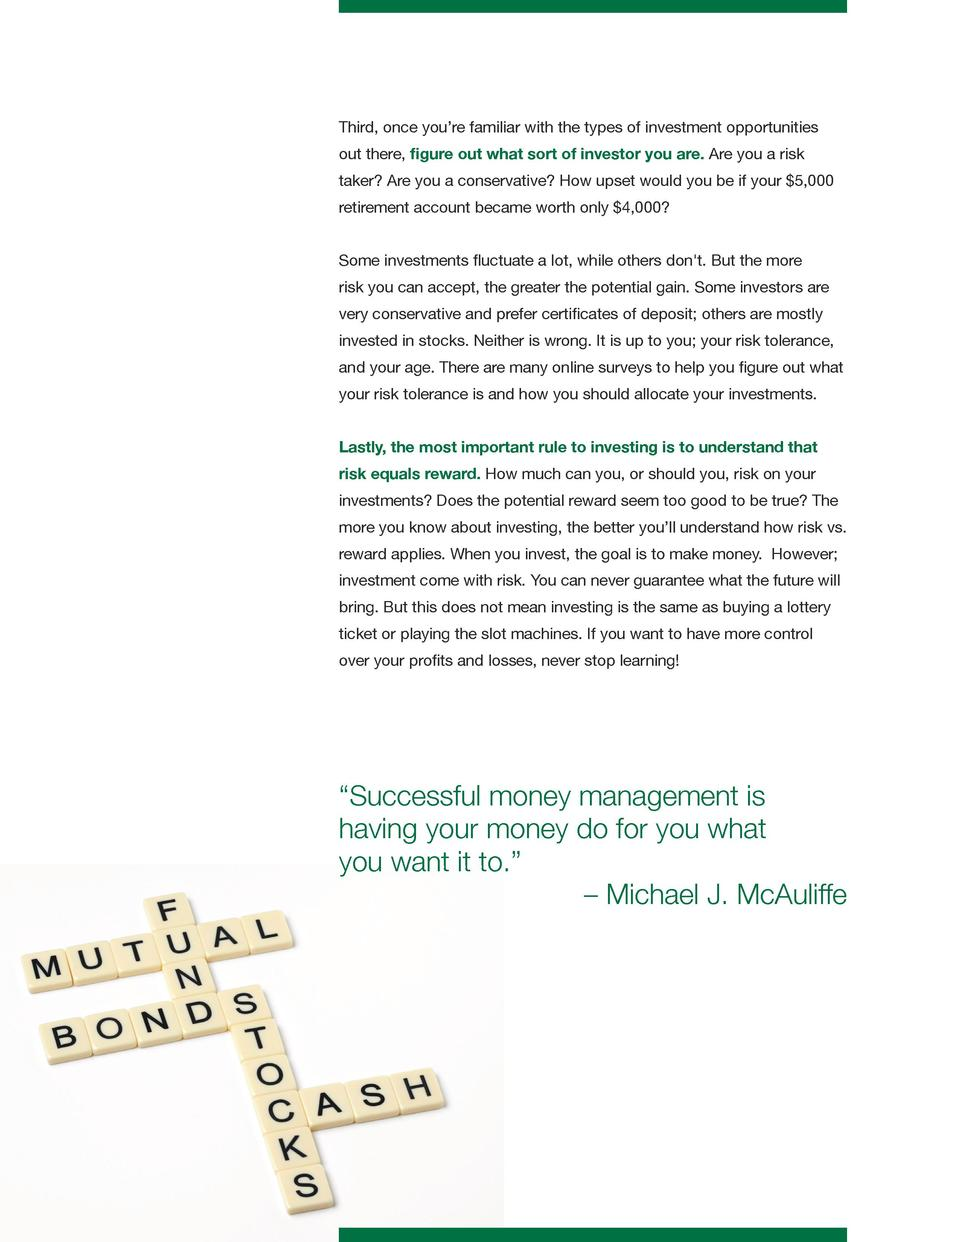 Money management made easy simplebooklet third once you re familiar with the types of investment opportunities out there figure 1betcityfo Images